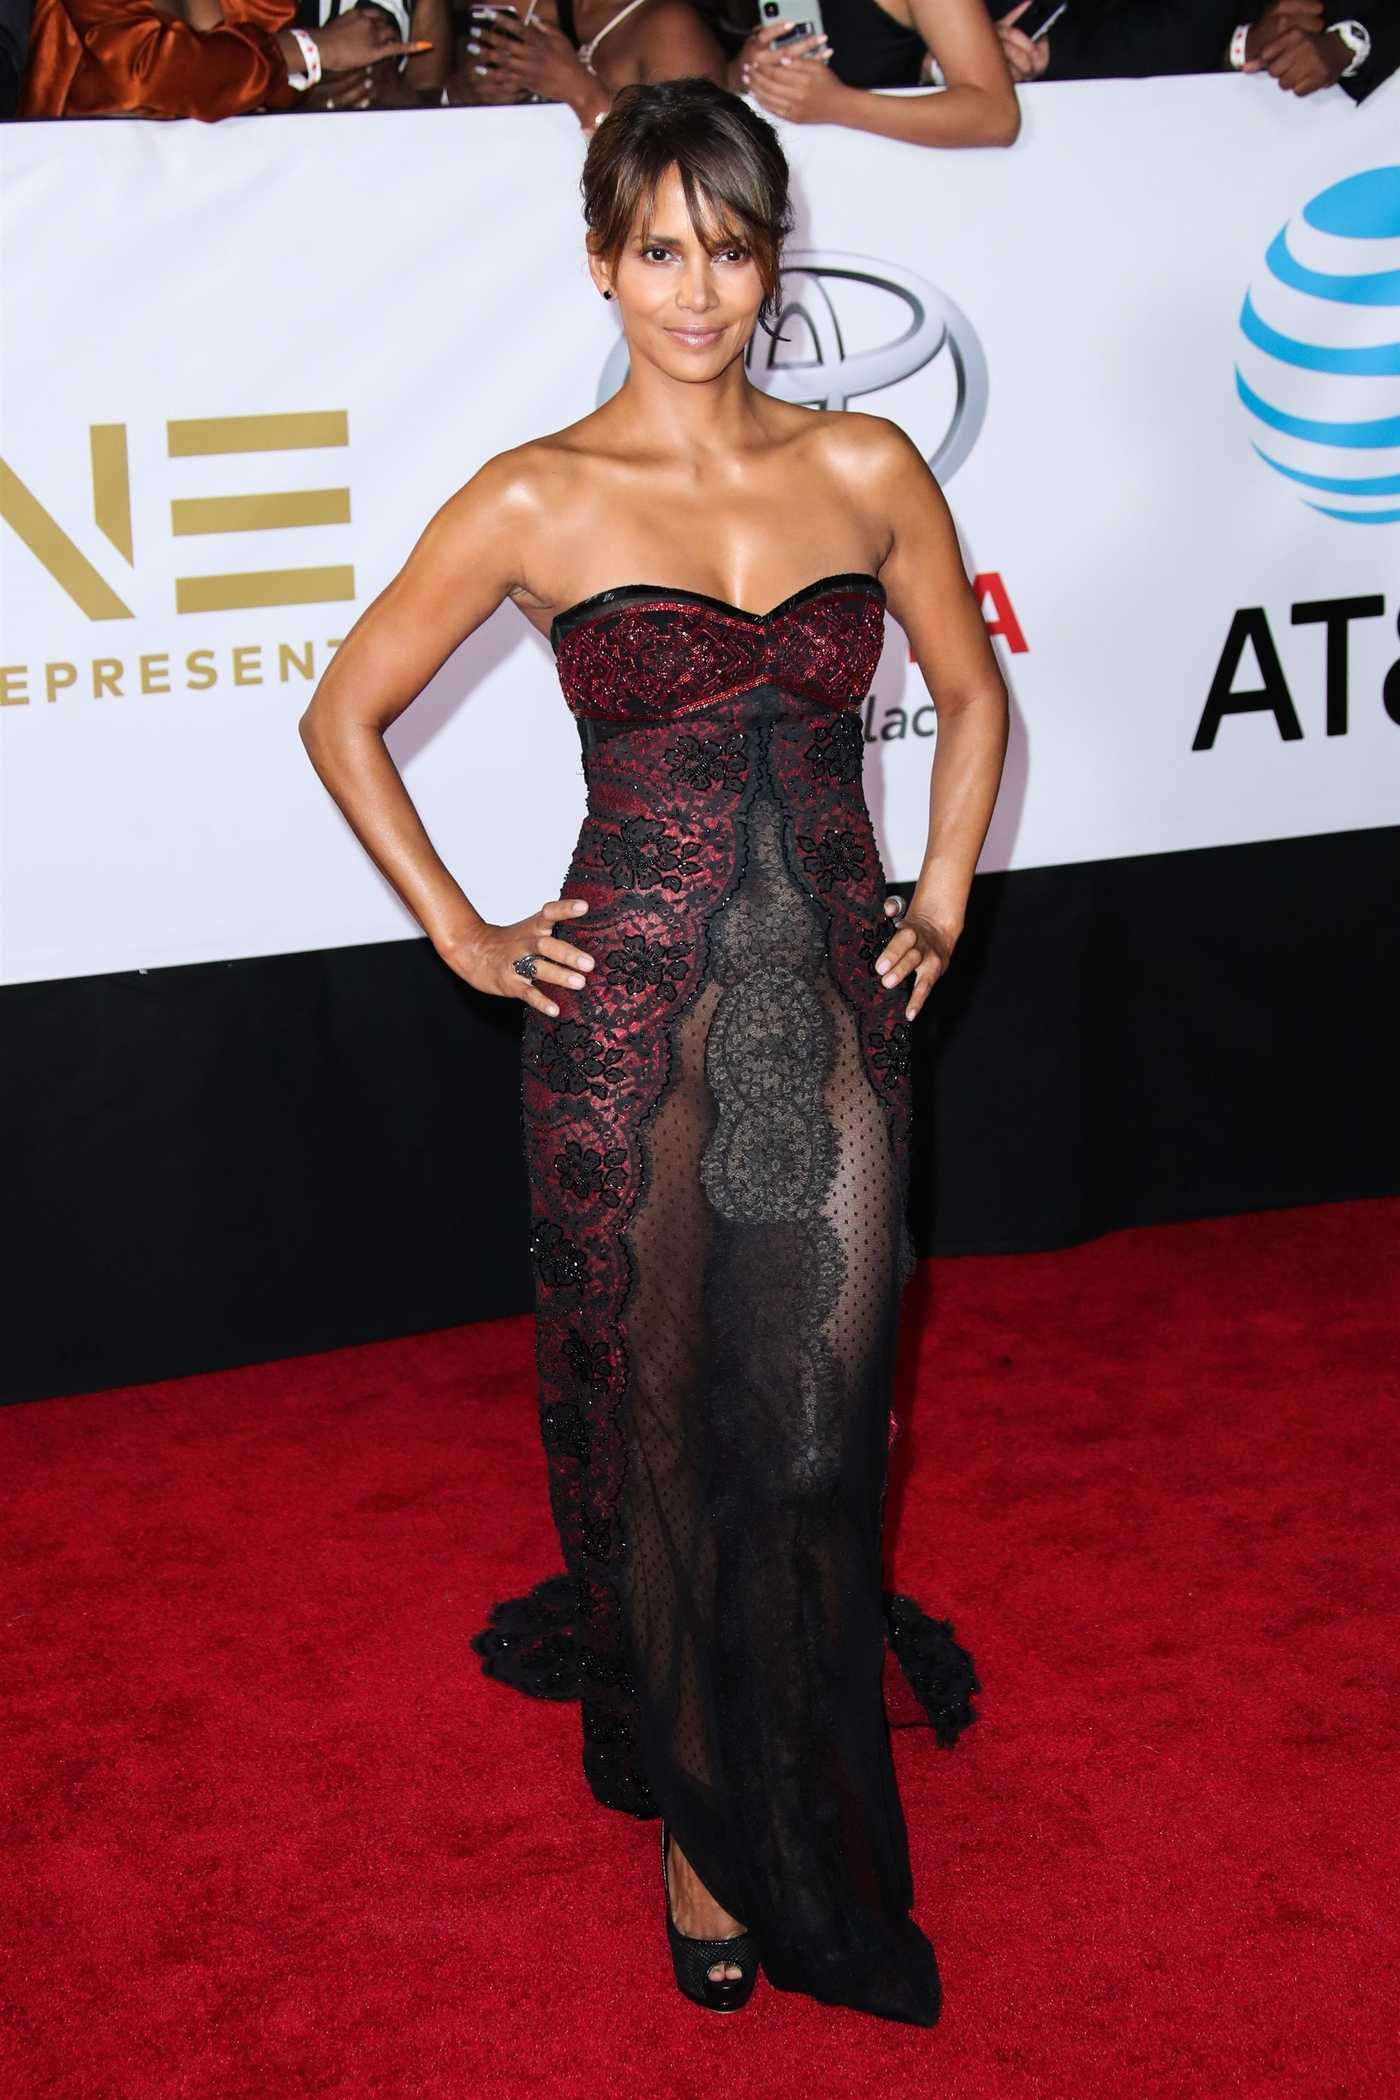 Halle Berry at the 49th NAACP Image Awards Dinner and Ceremony in Pasadena 01/15/2018